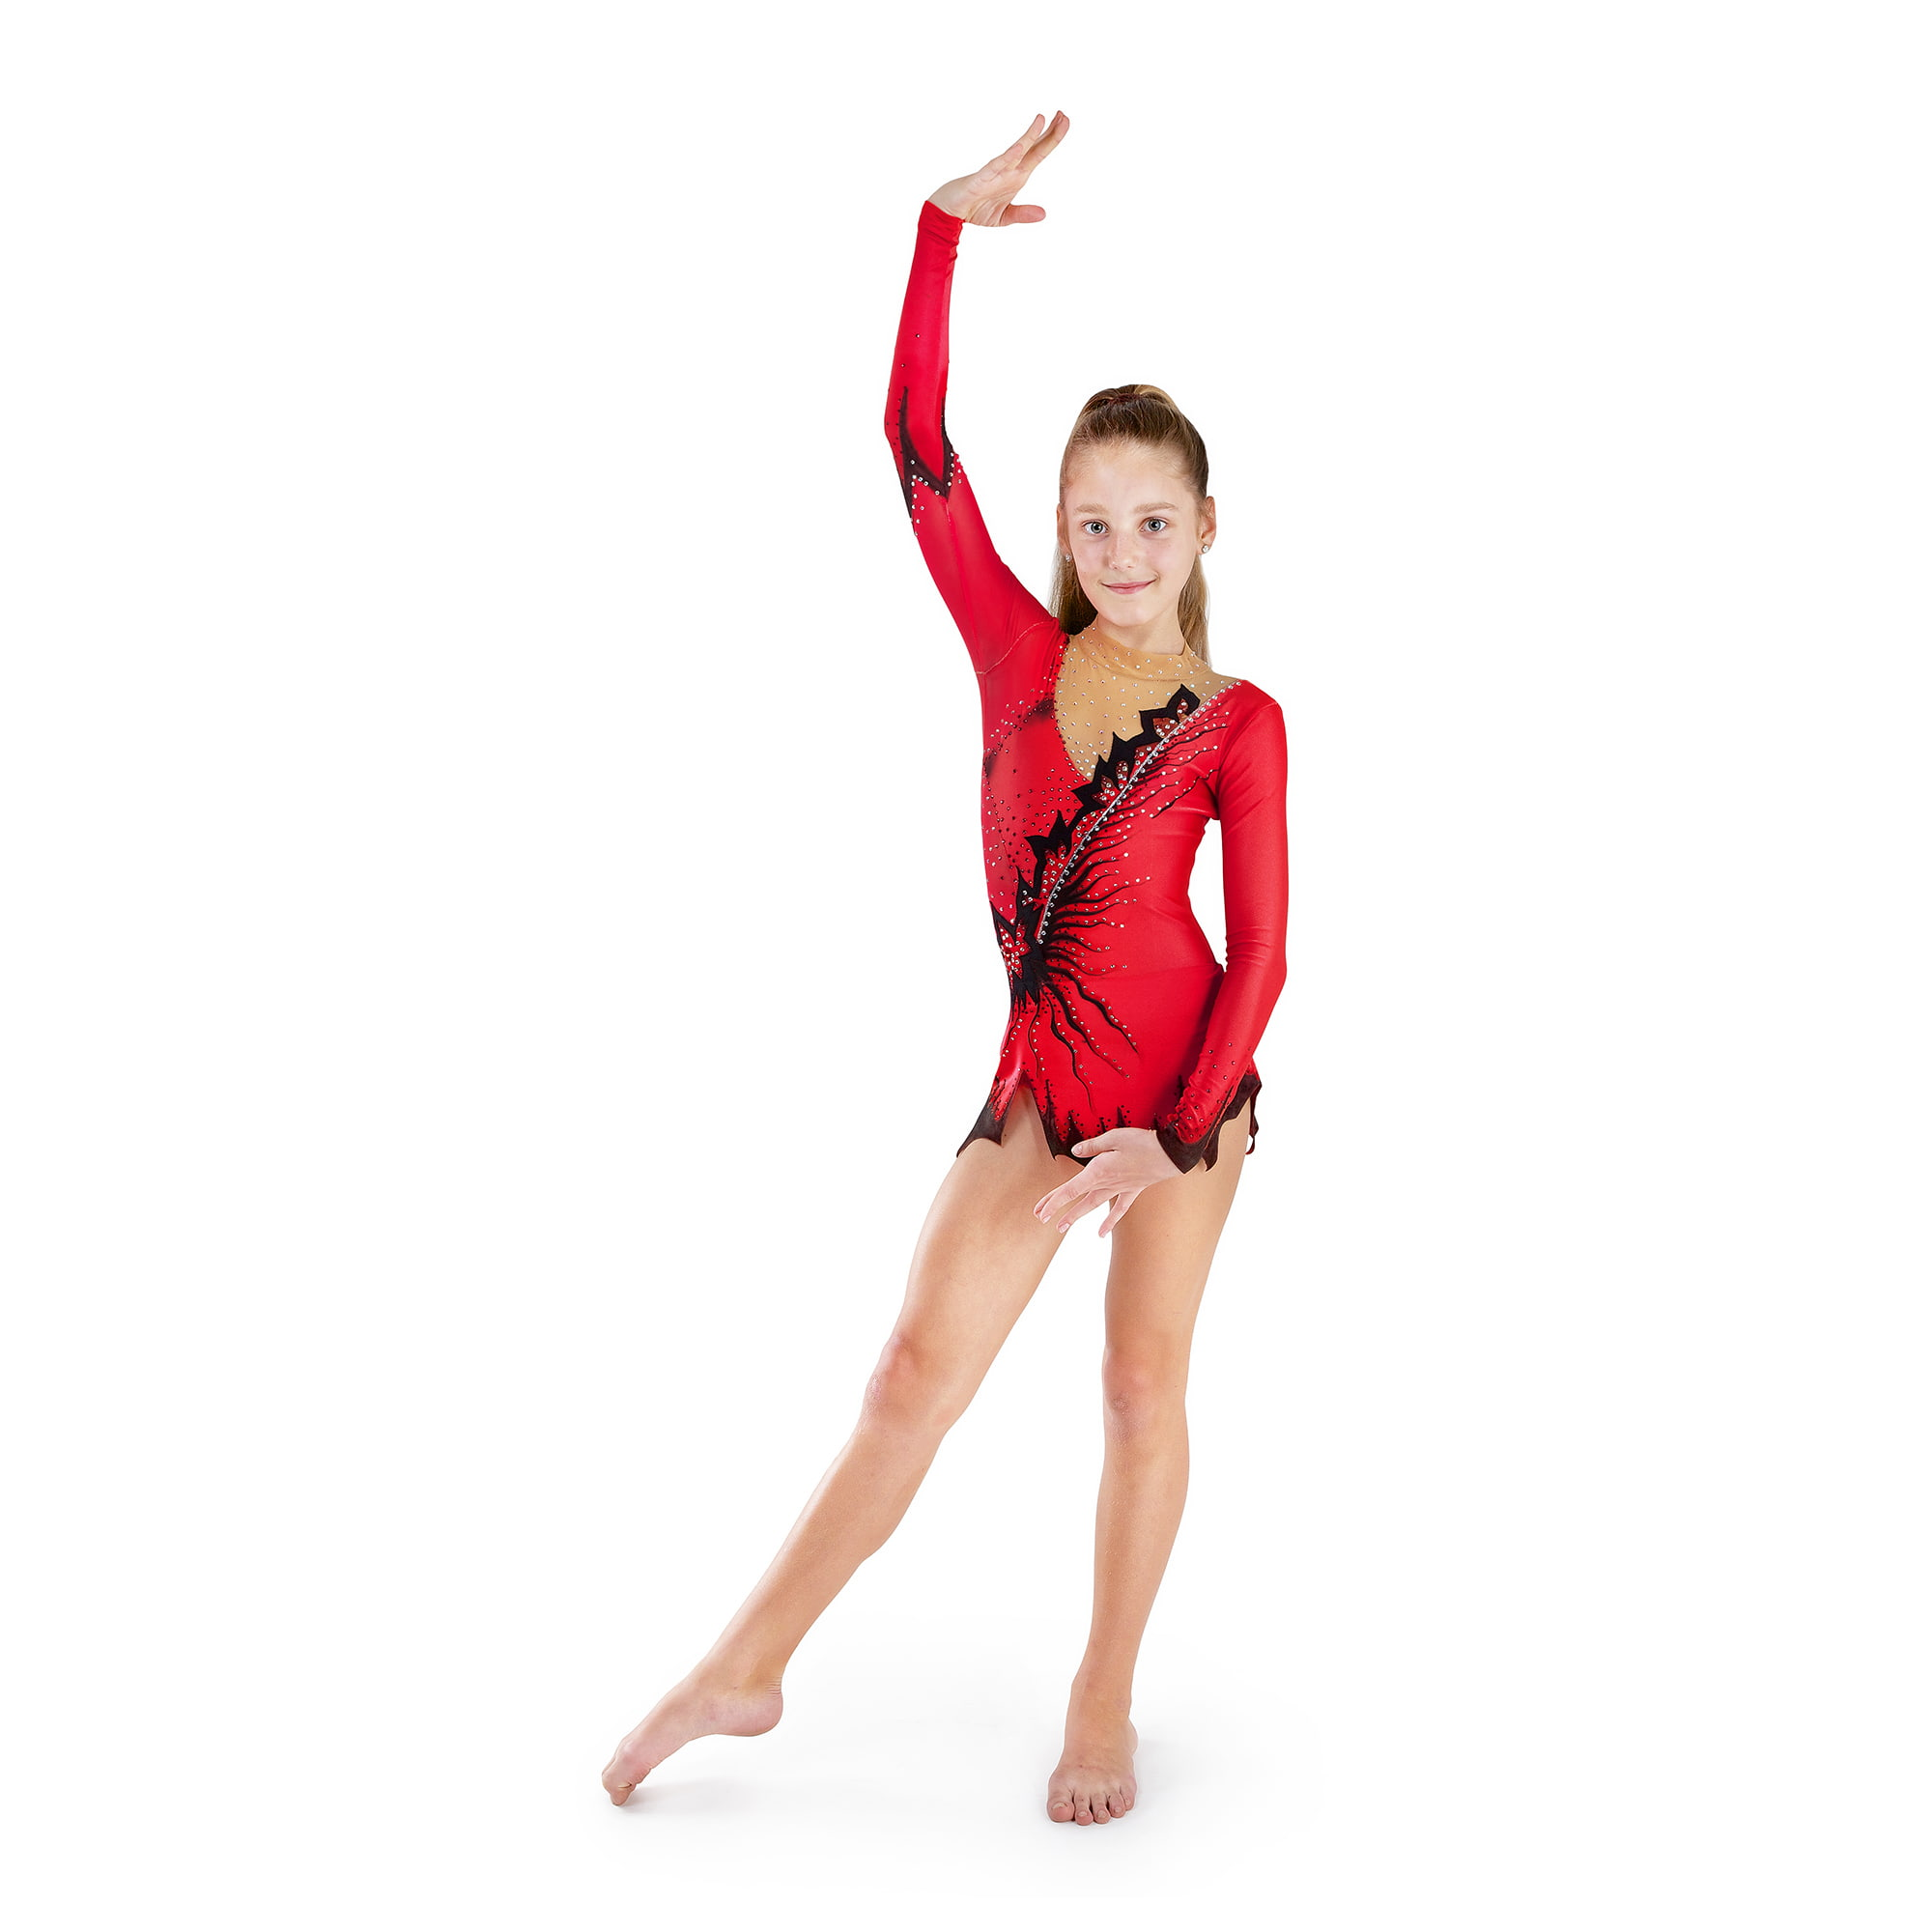 Red & black gymnastics leotard № 126 for competitions